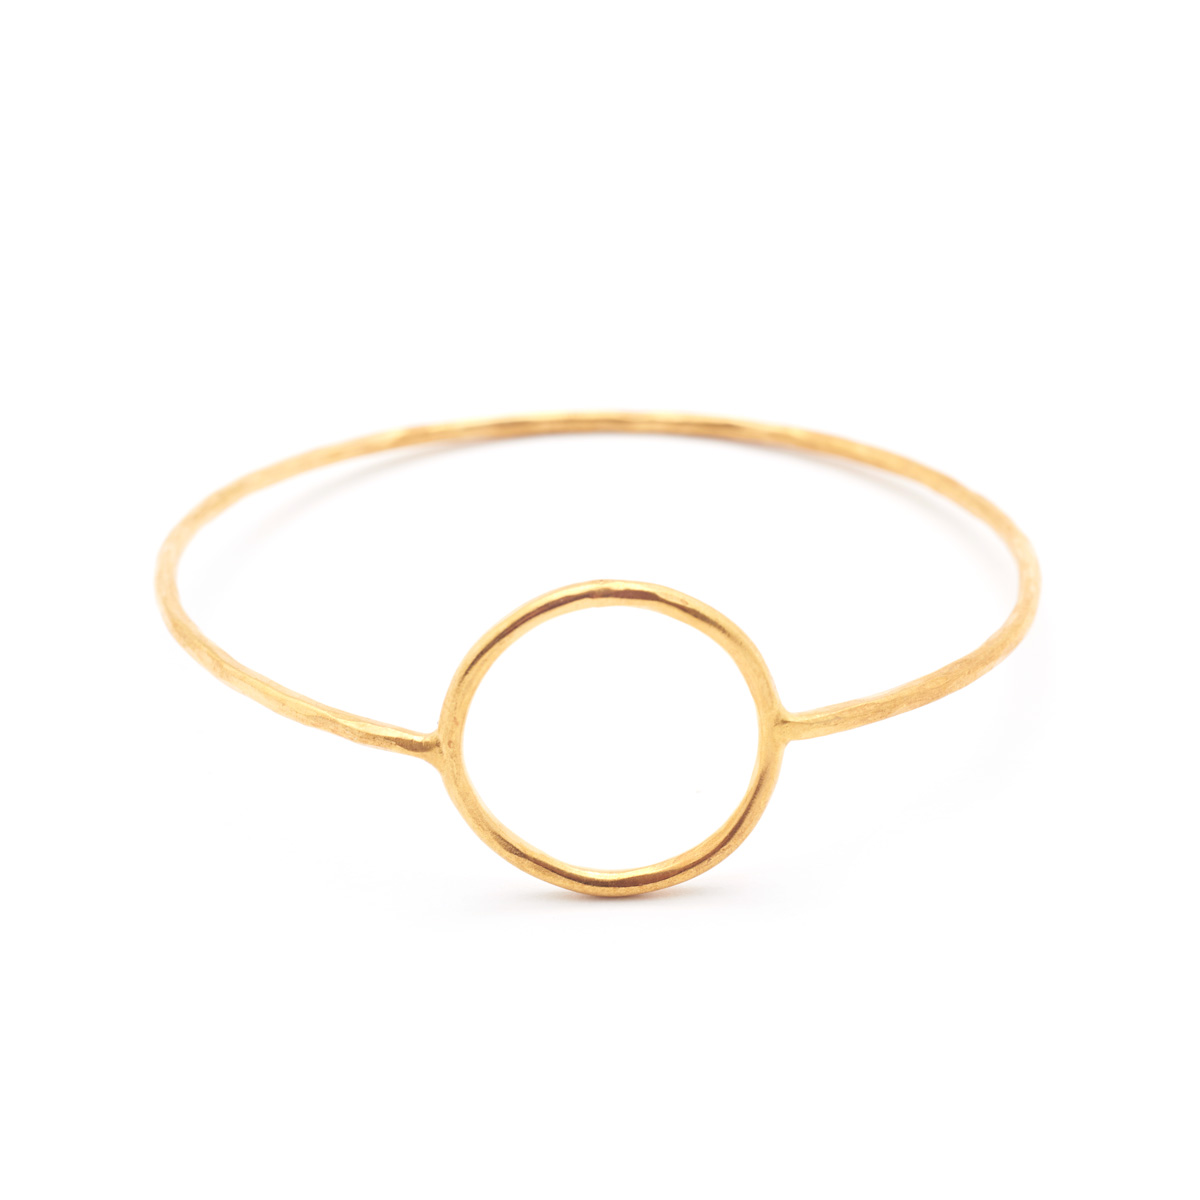 Gold Circle Outline Bangle by Mirabelle